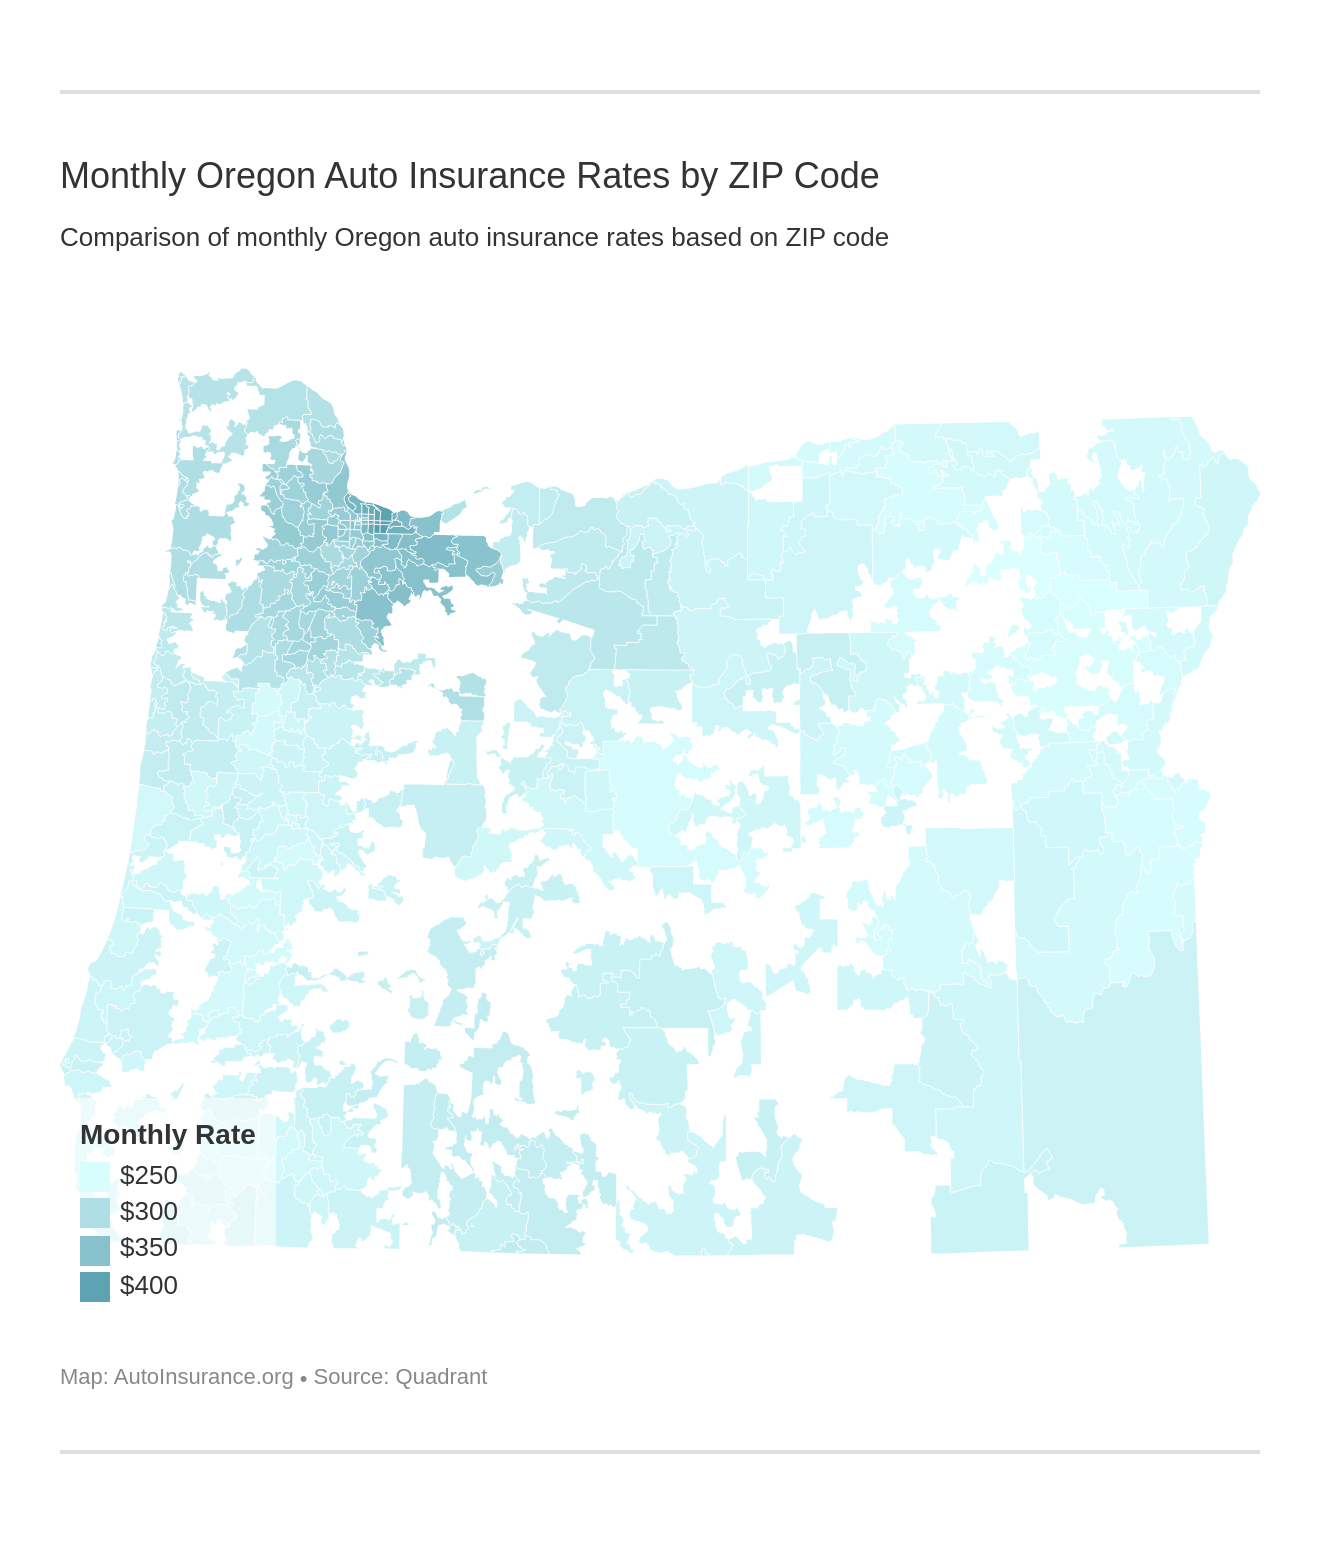 Monthly Oregon Auto Insurance Rates by ZIP Code